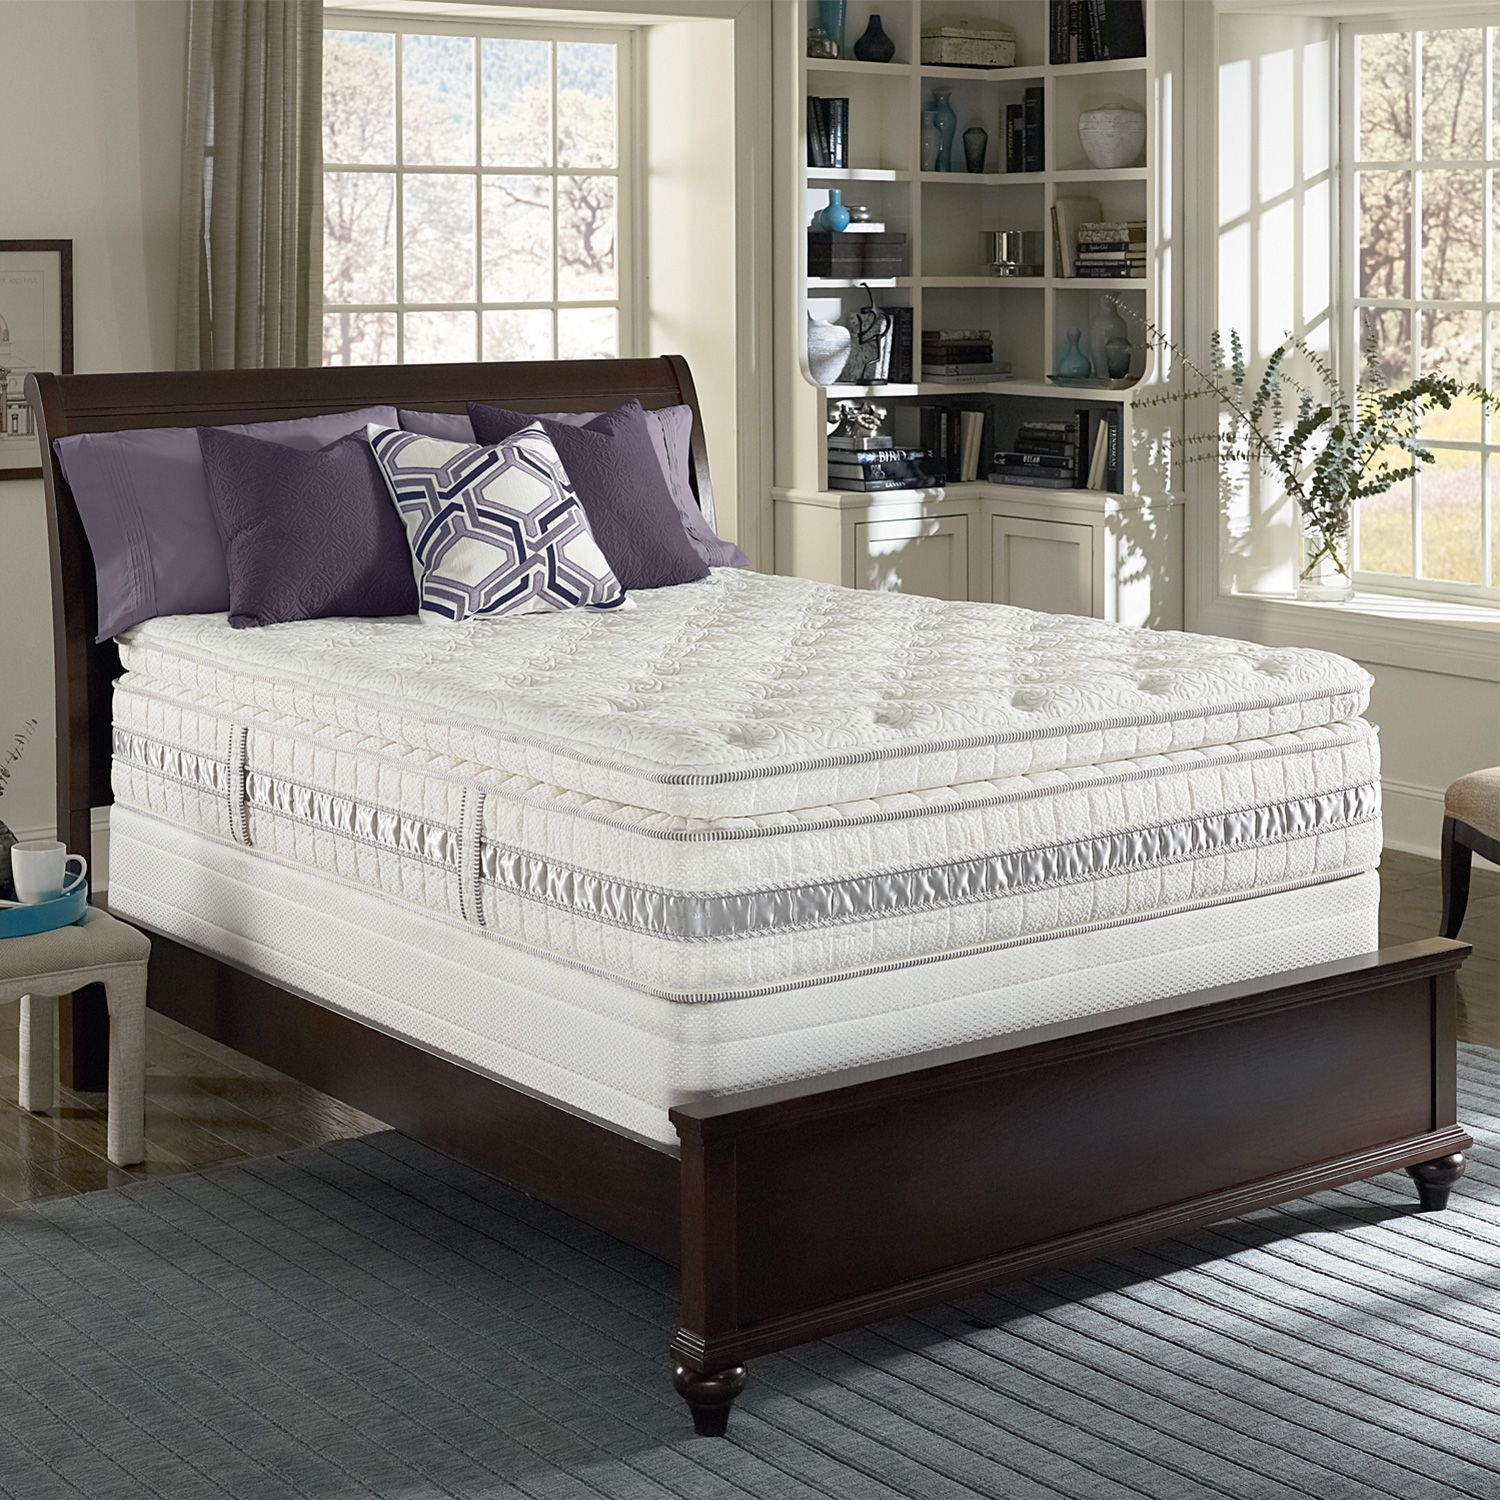 Serta Perfect Sleeper Wincroft Luxury Pillowtop Mattress Set  Queen  Sam'S Club With Images